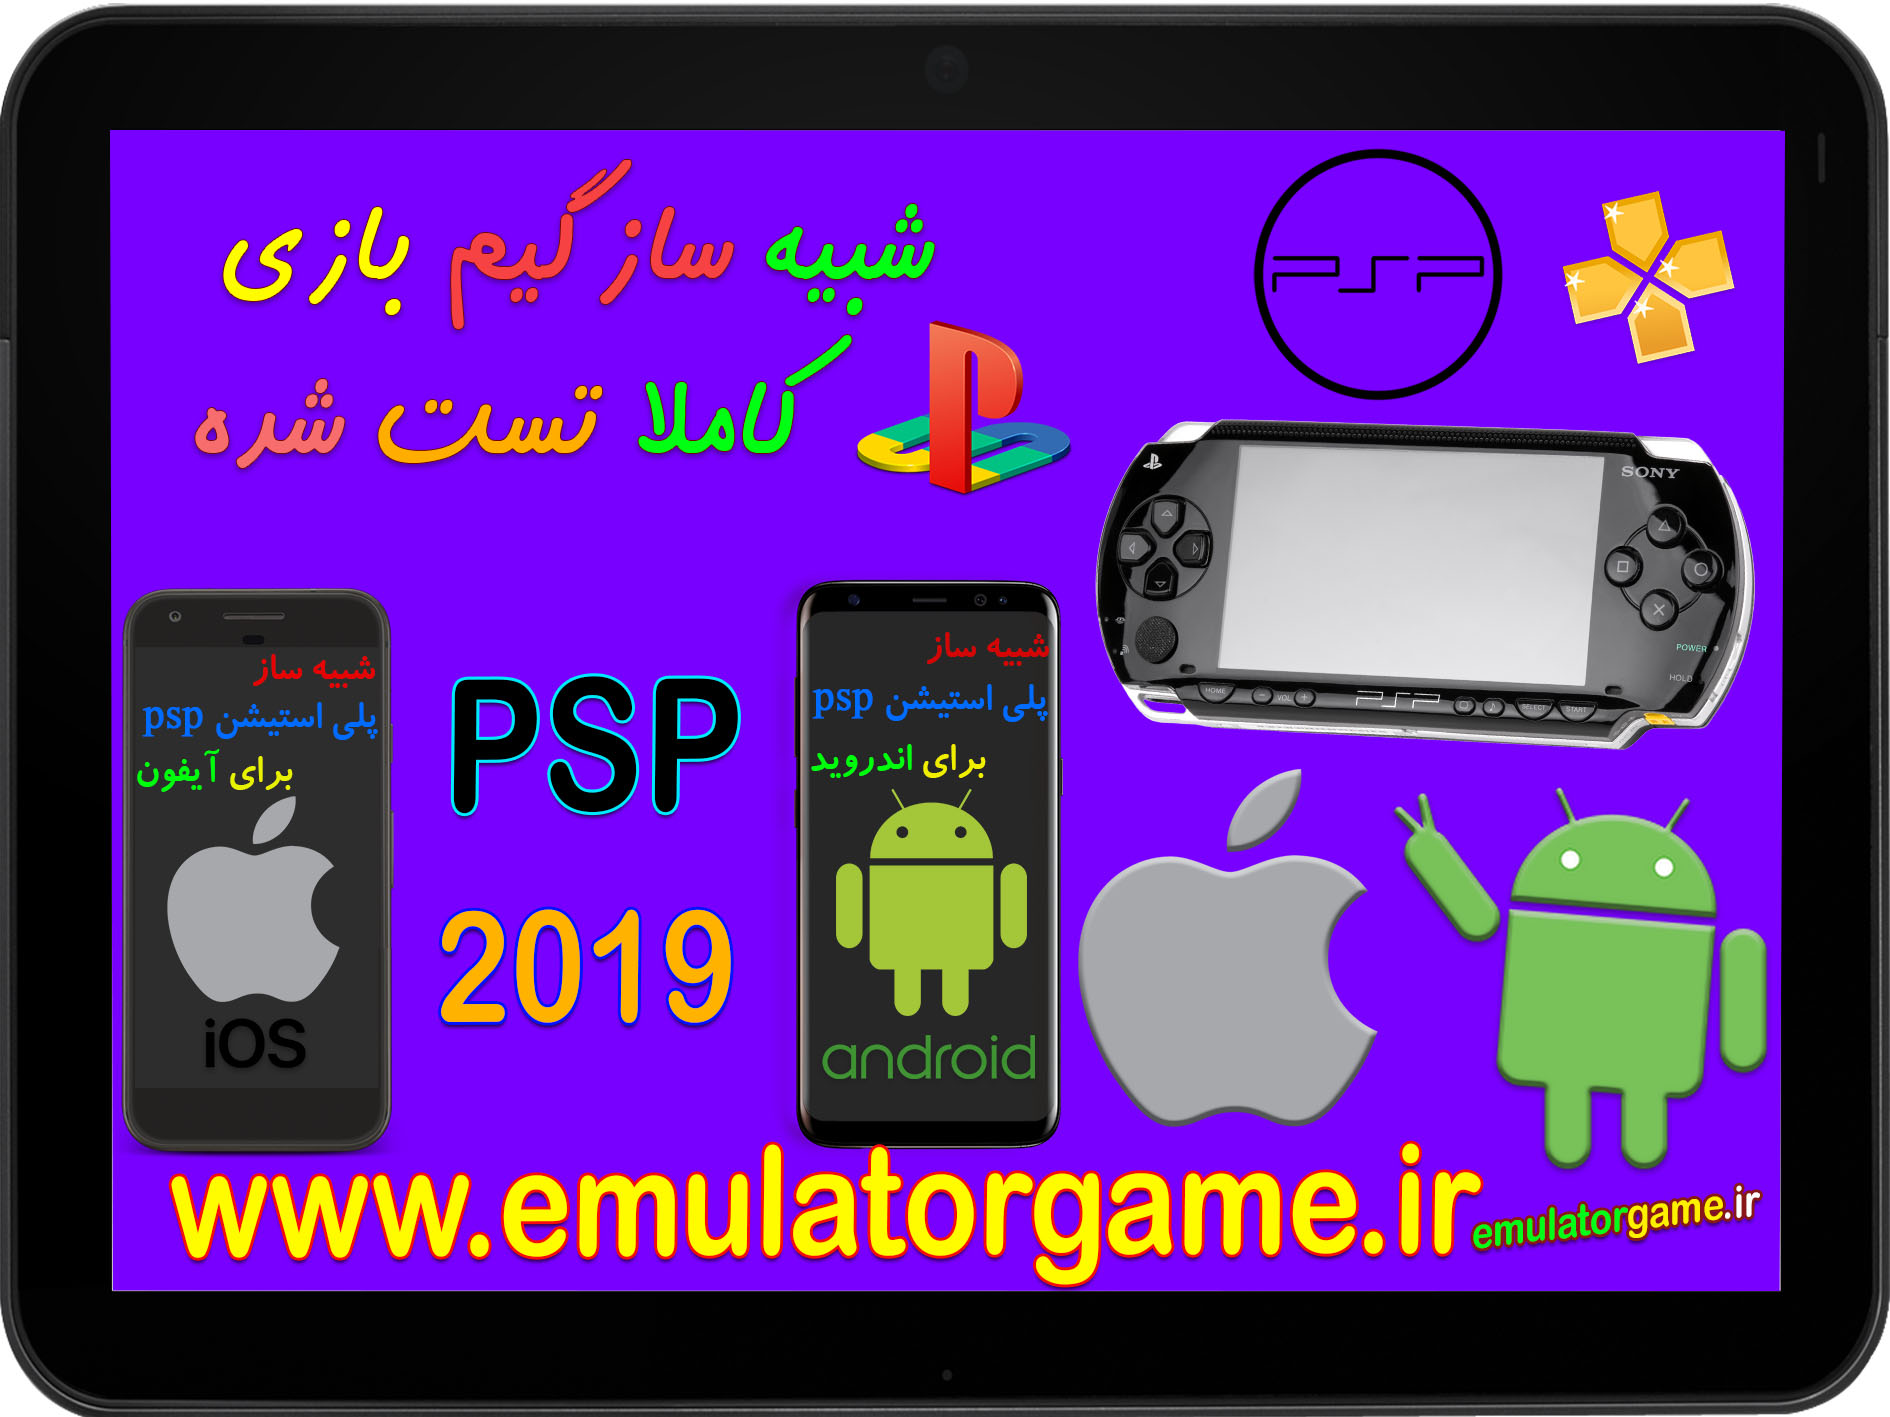 android psp 2019